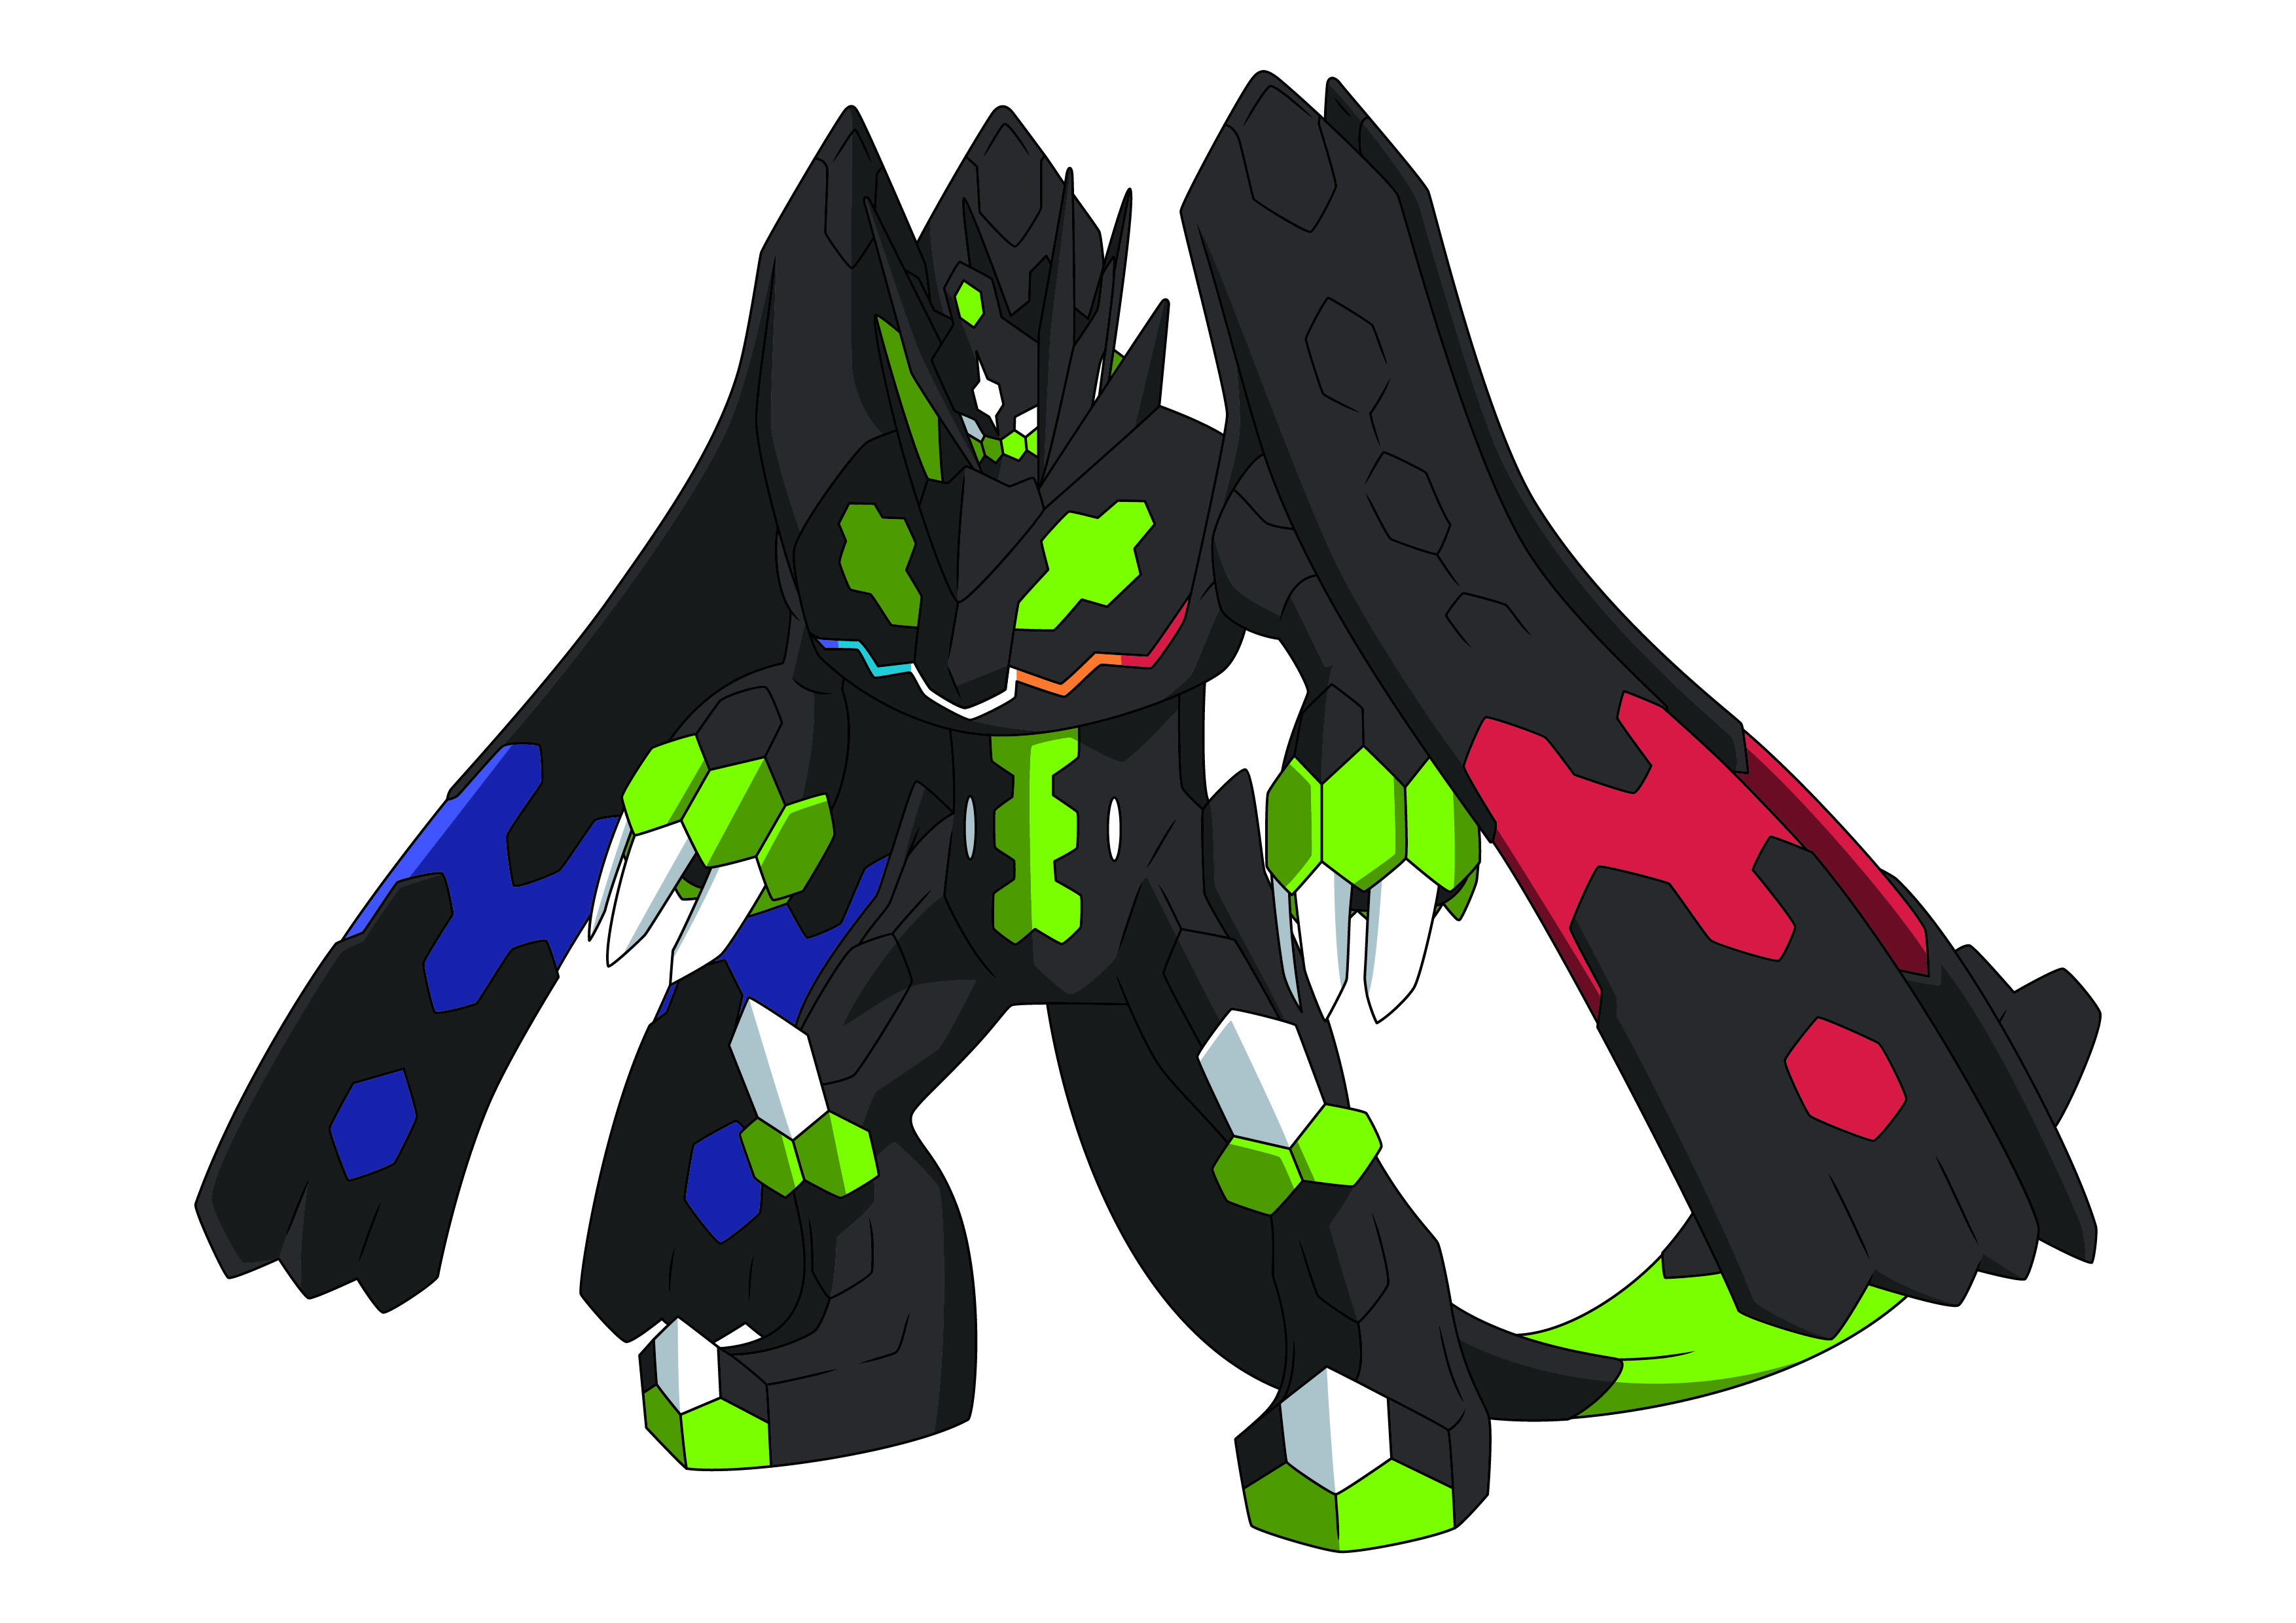 New zygarde formes ash greninja and pok mon xy z anime for Boden pokemon